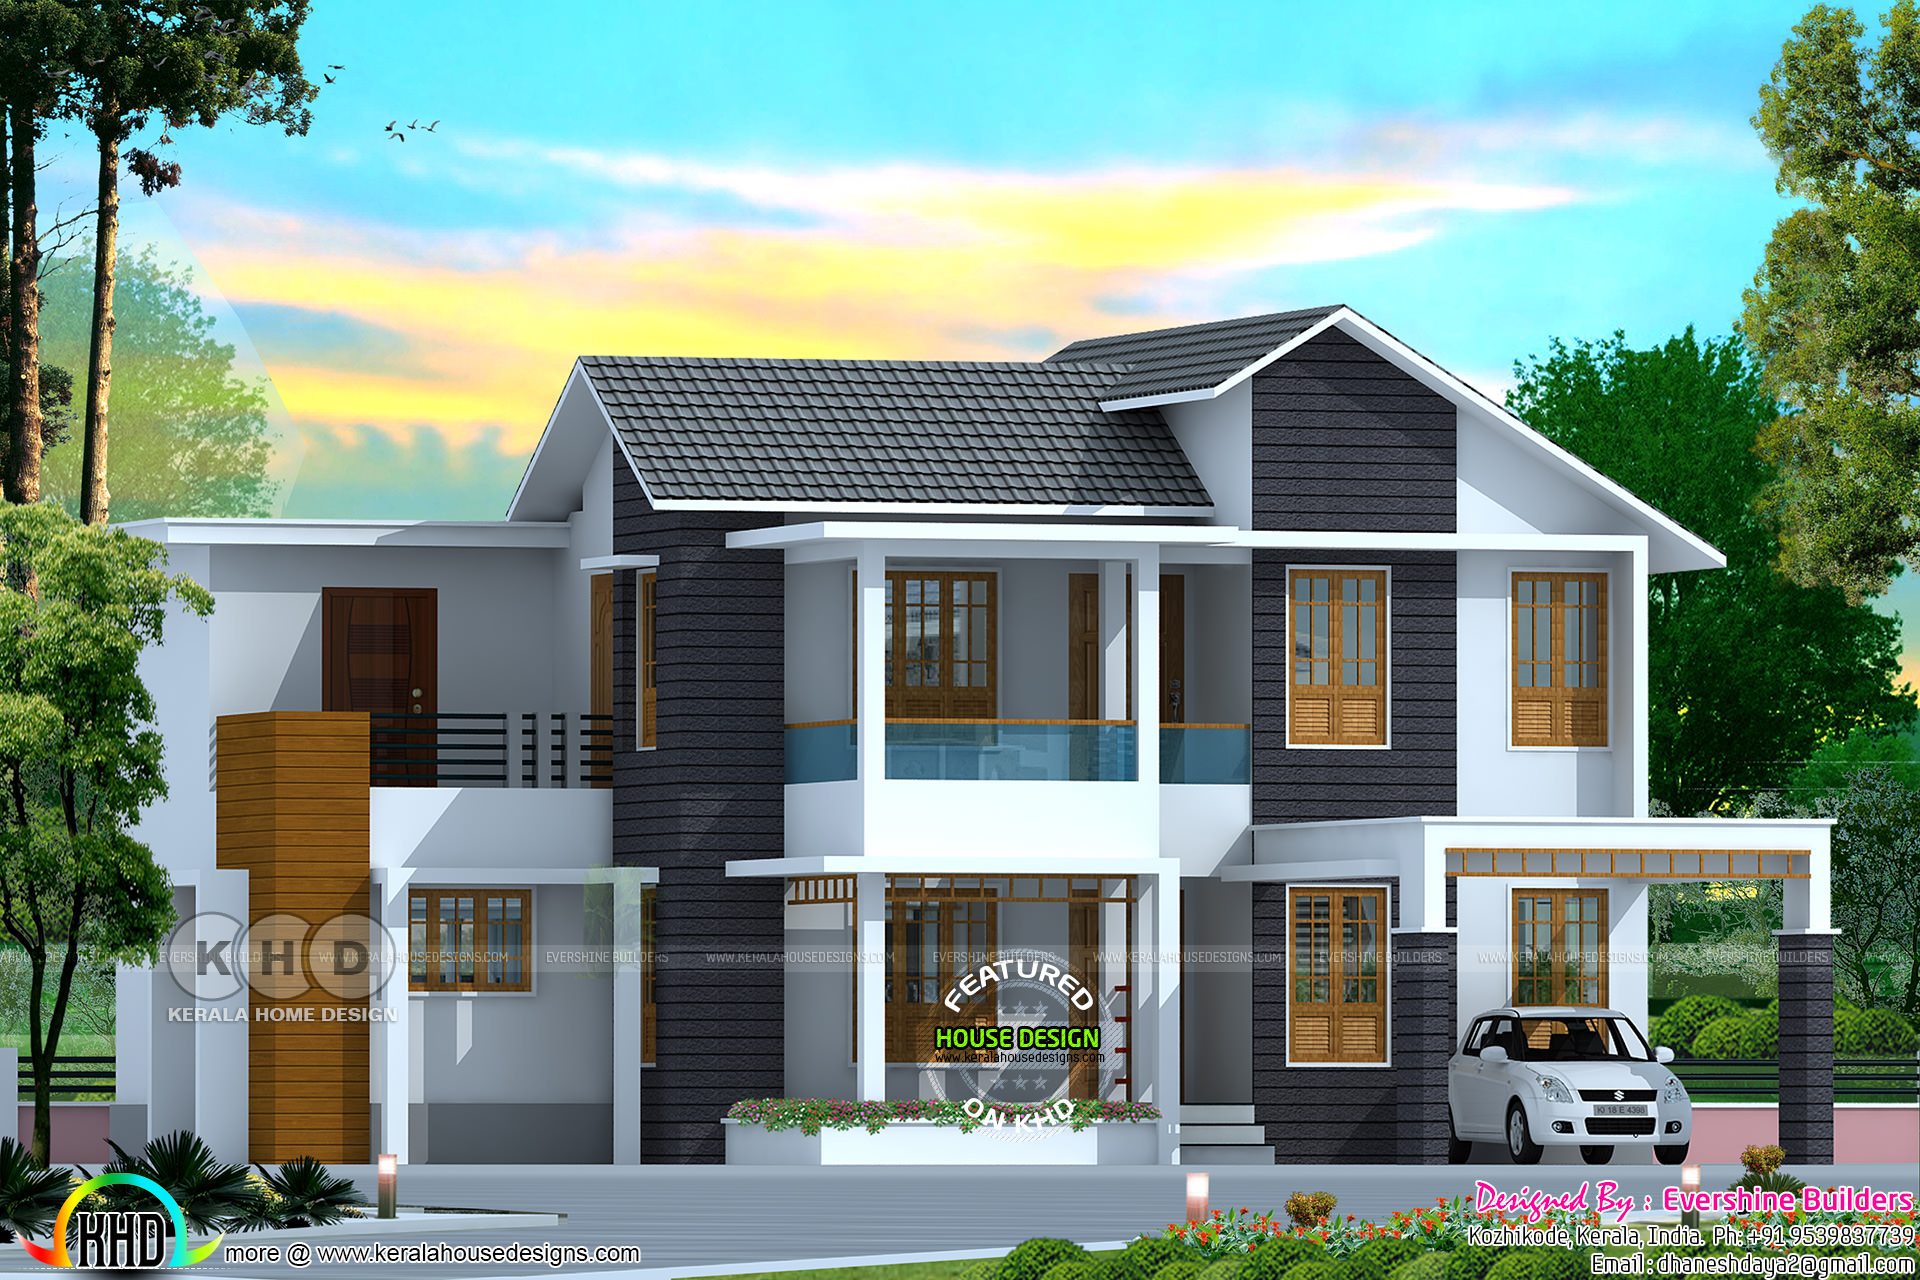 Amazing 4 Bedroom Mixed Roof Home Part - 7: No. Of Bedrooms : 4. Design Style : Mix Roof. Facilities Of This House.  Read More » Please Follow Kerala Home Design